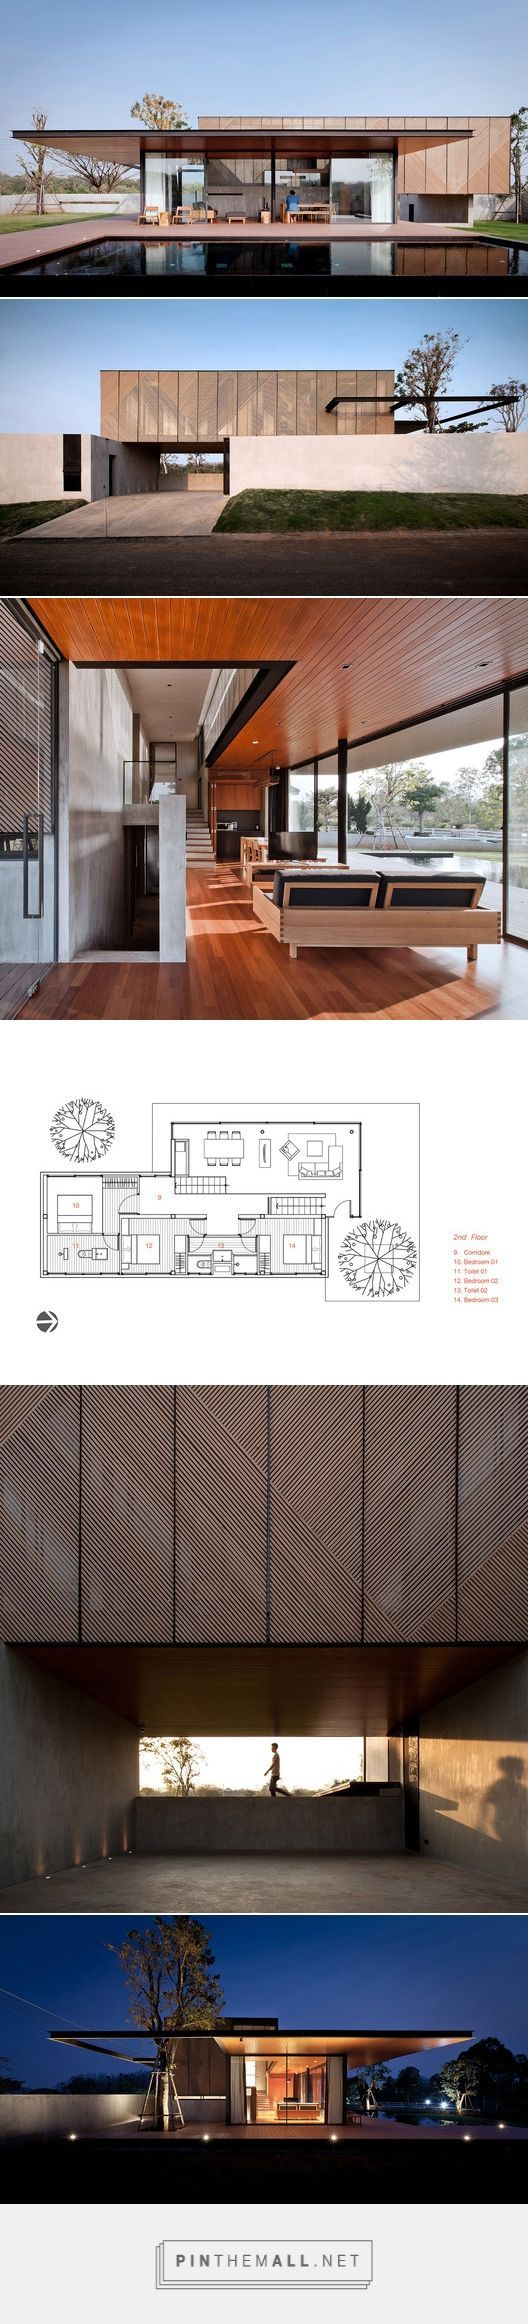 KA House / IDIN Architects | ArchDaily - created via http://pinthemall.net